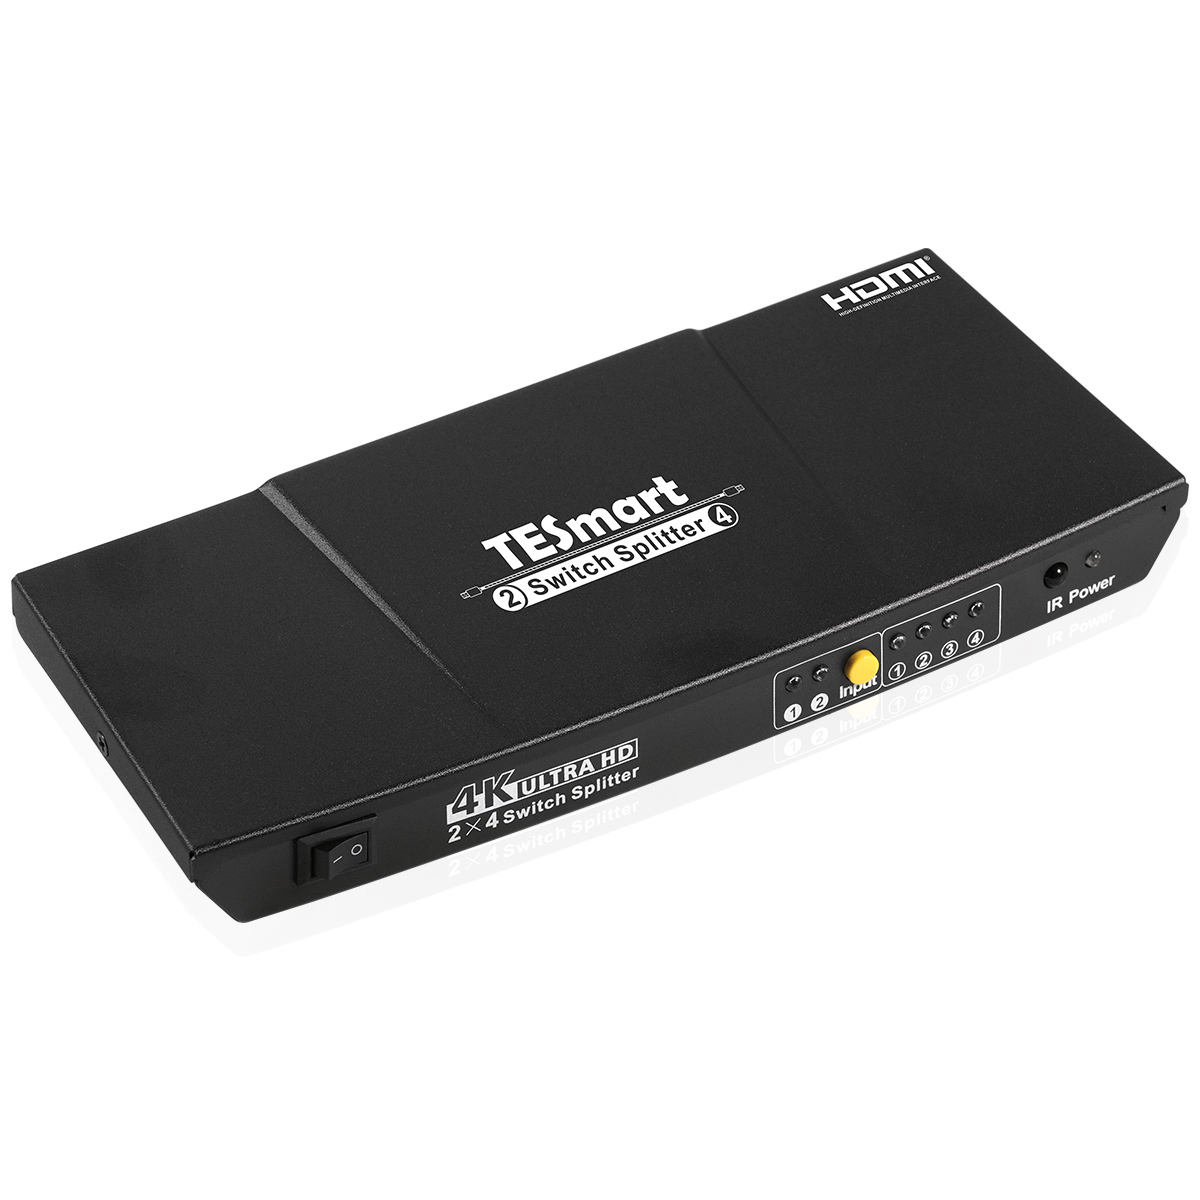 4K 2 in 4 out HDMI Switch Splitter 2x4 Con <span class=keywords><strong>HD</strong></span> Video Splitter